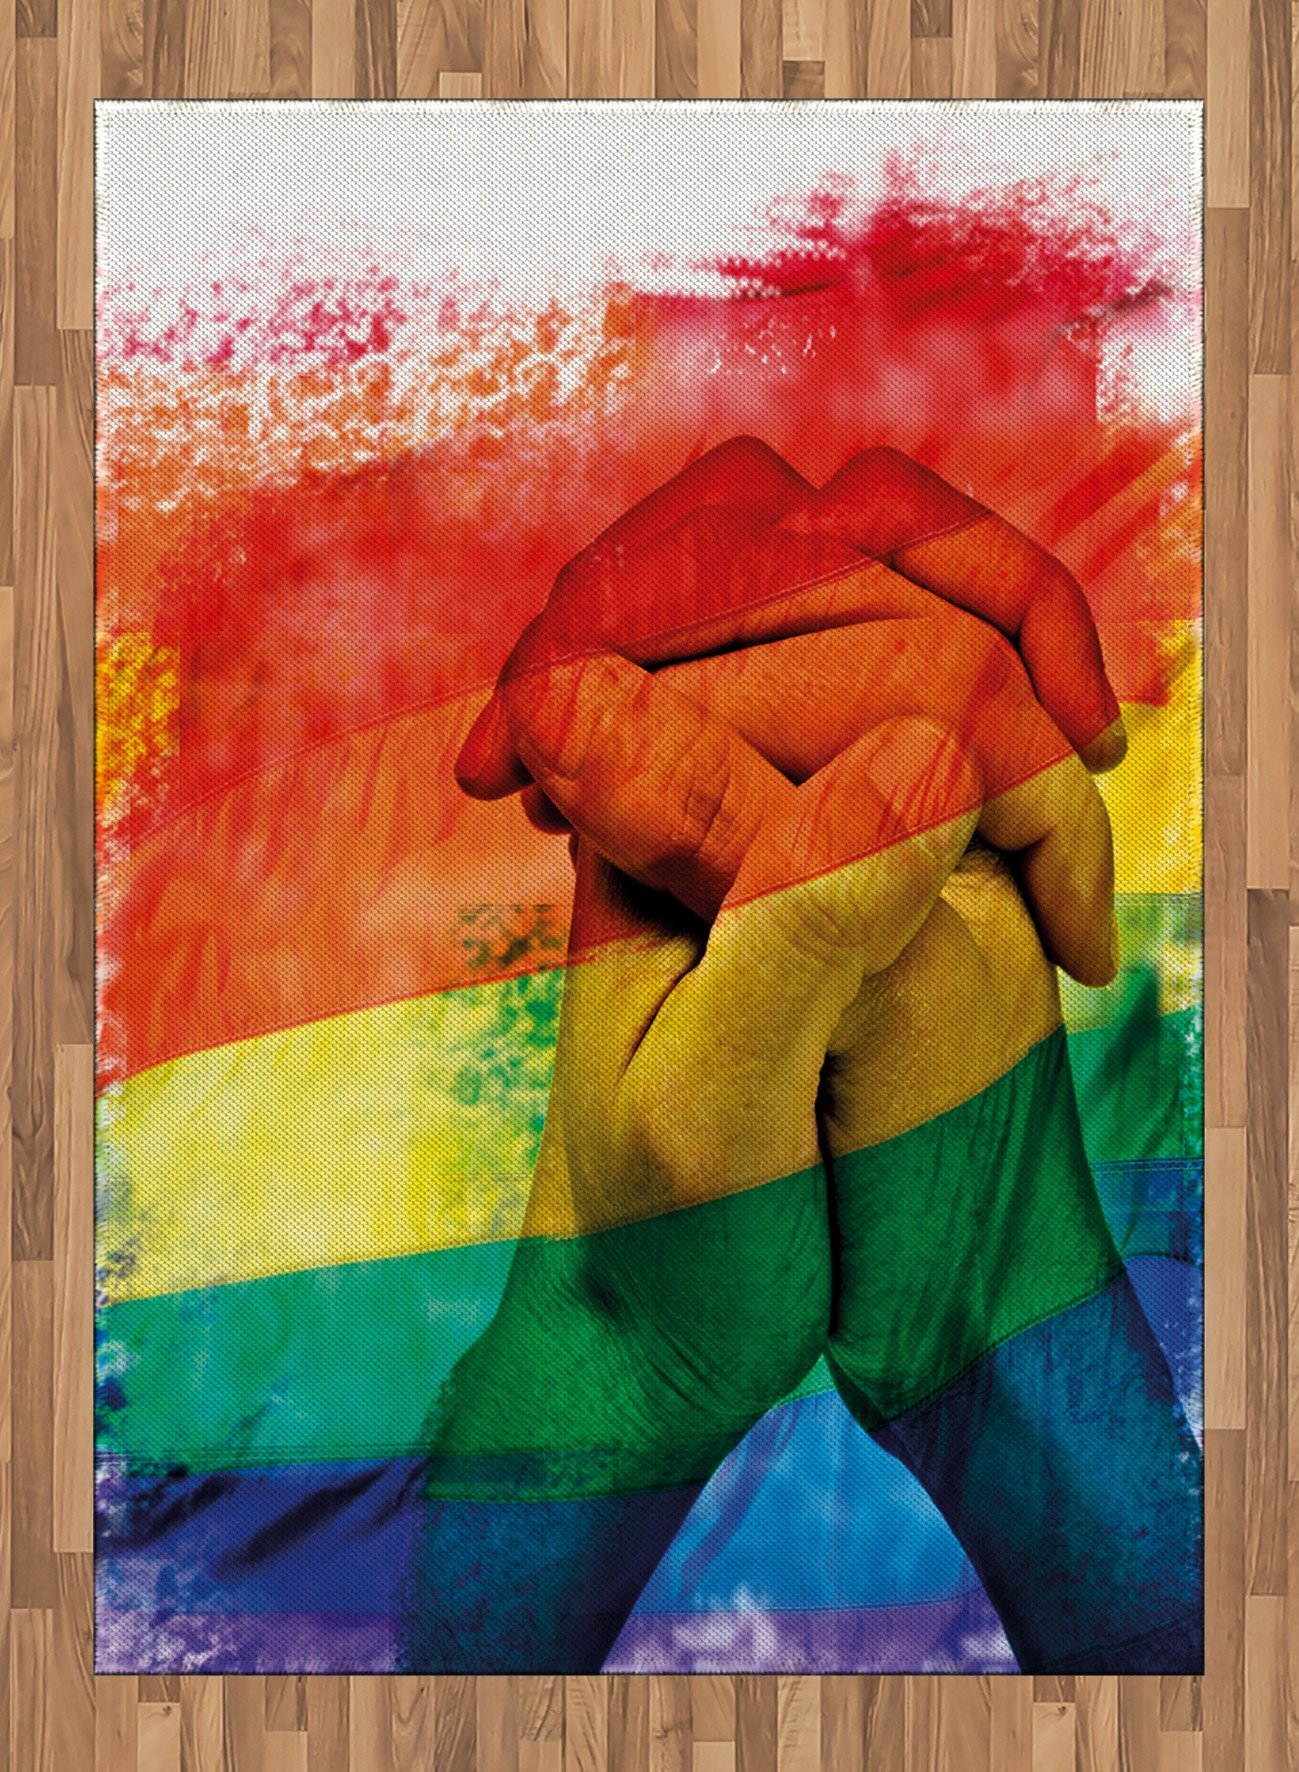 Pride Area Rug by Ambesonne, Hands of Young Men Put Together on Abstract LGBT Parade Flag Love Wins Gay Partners, Flat Woven Accent Rug for Living Room Bedroom Dining Room, 5.2 x 7.5 FT, Multicolor